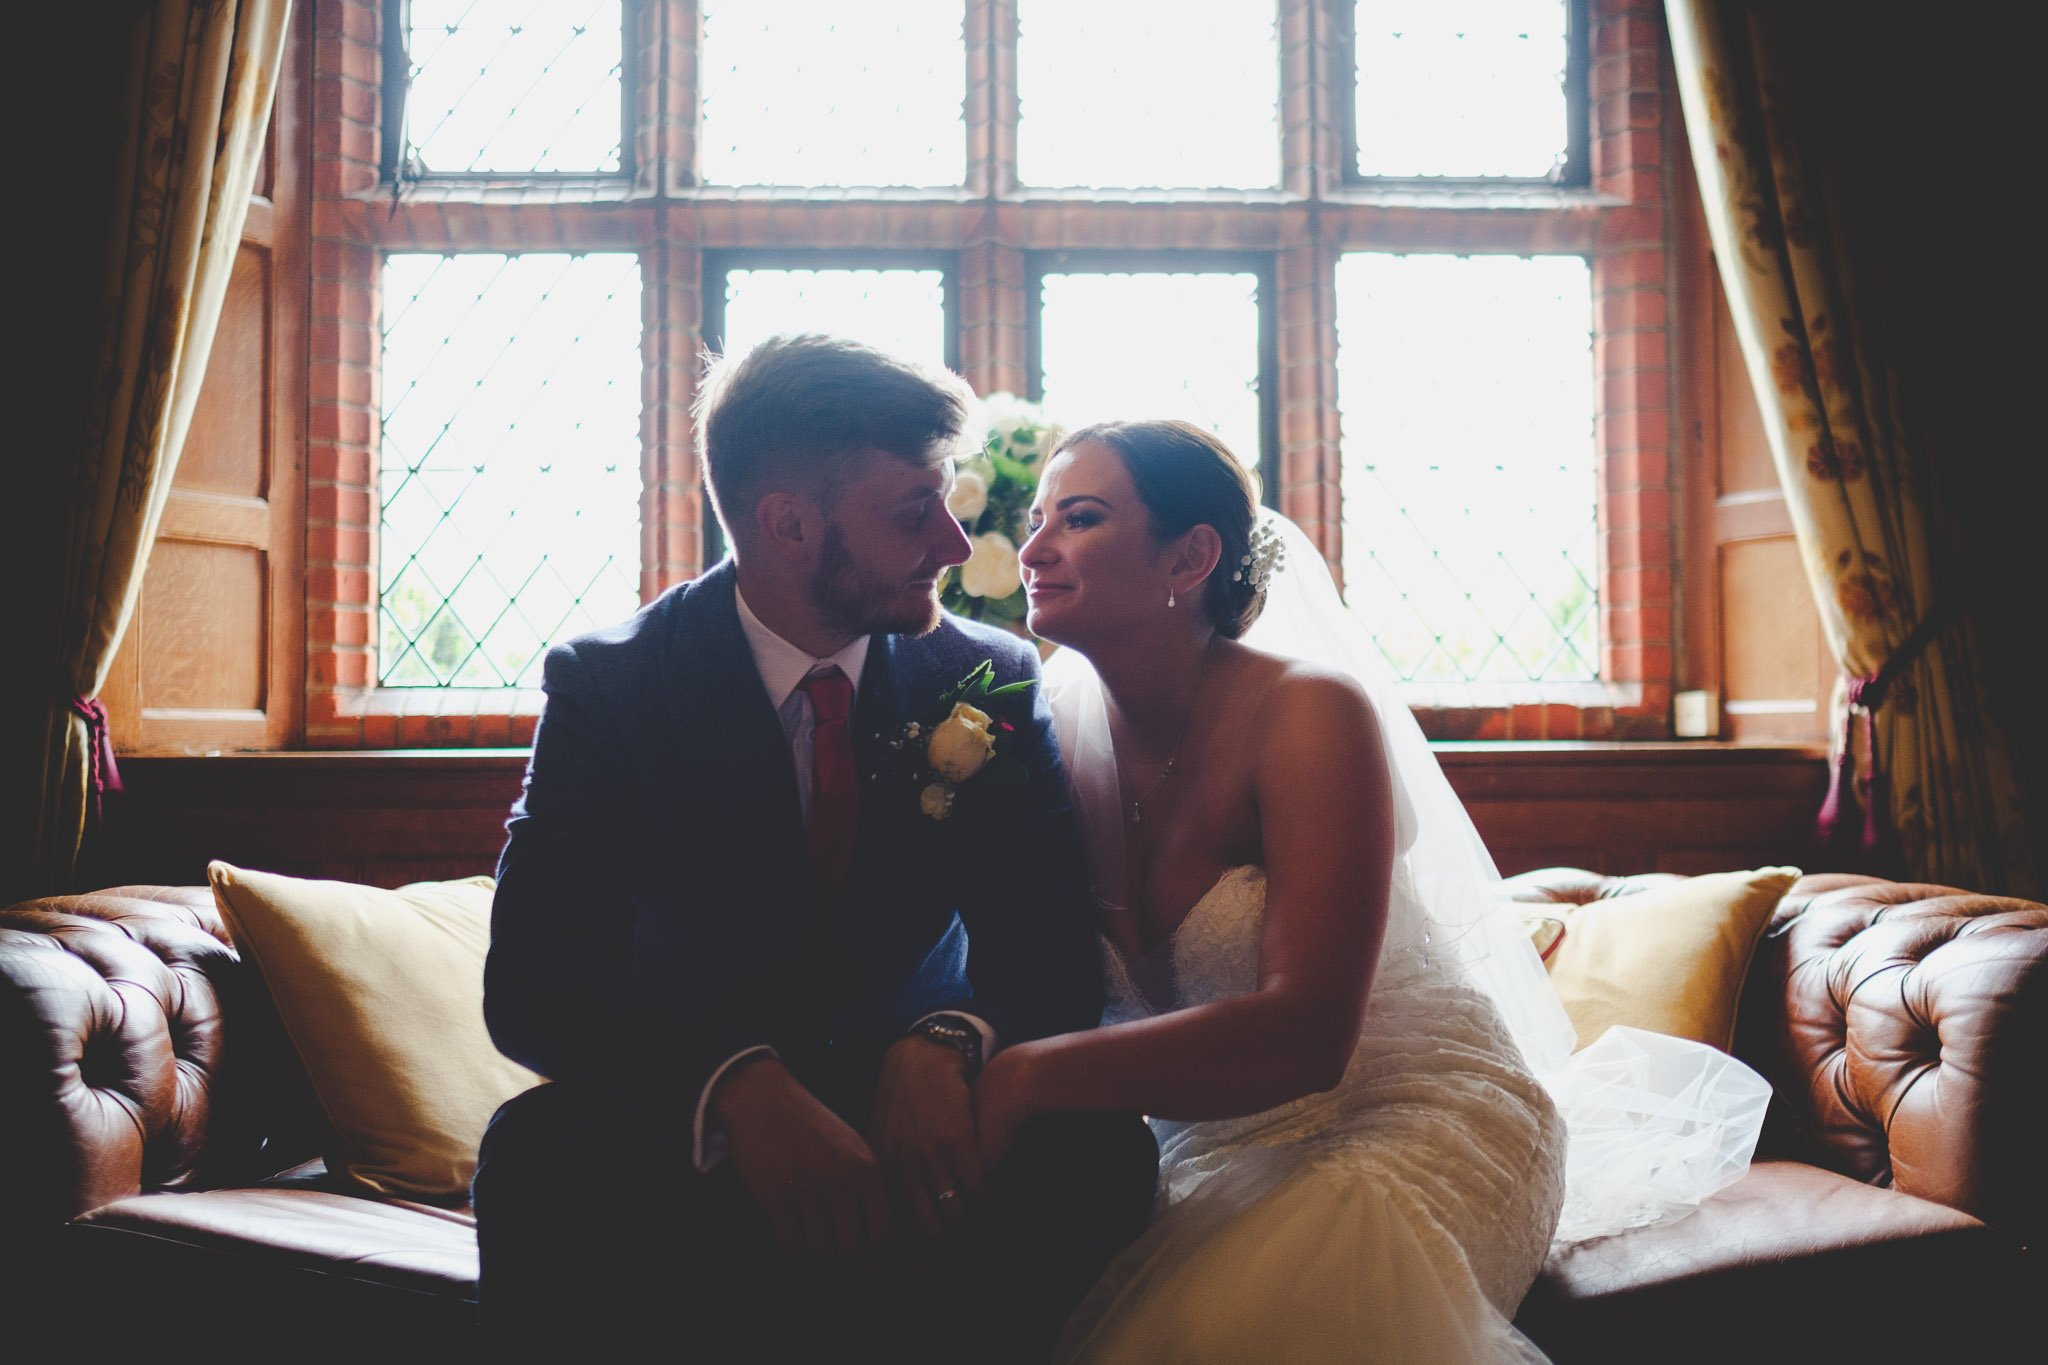 Creative portrait of a just married couple hugging on a Chesterfield sofa. Photography by thatthingyoupluck.